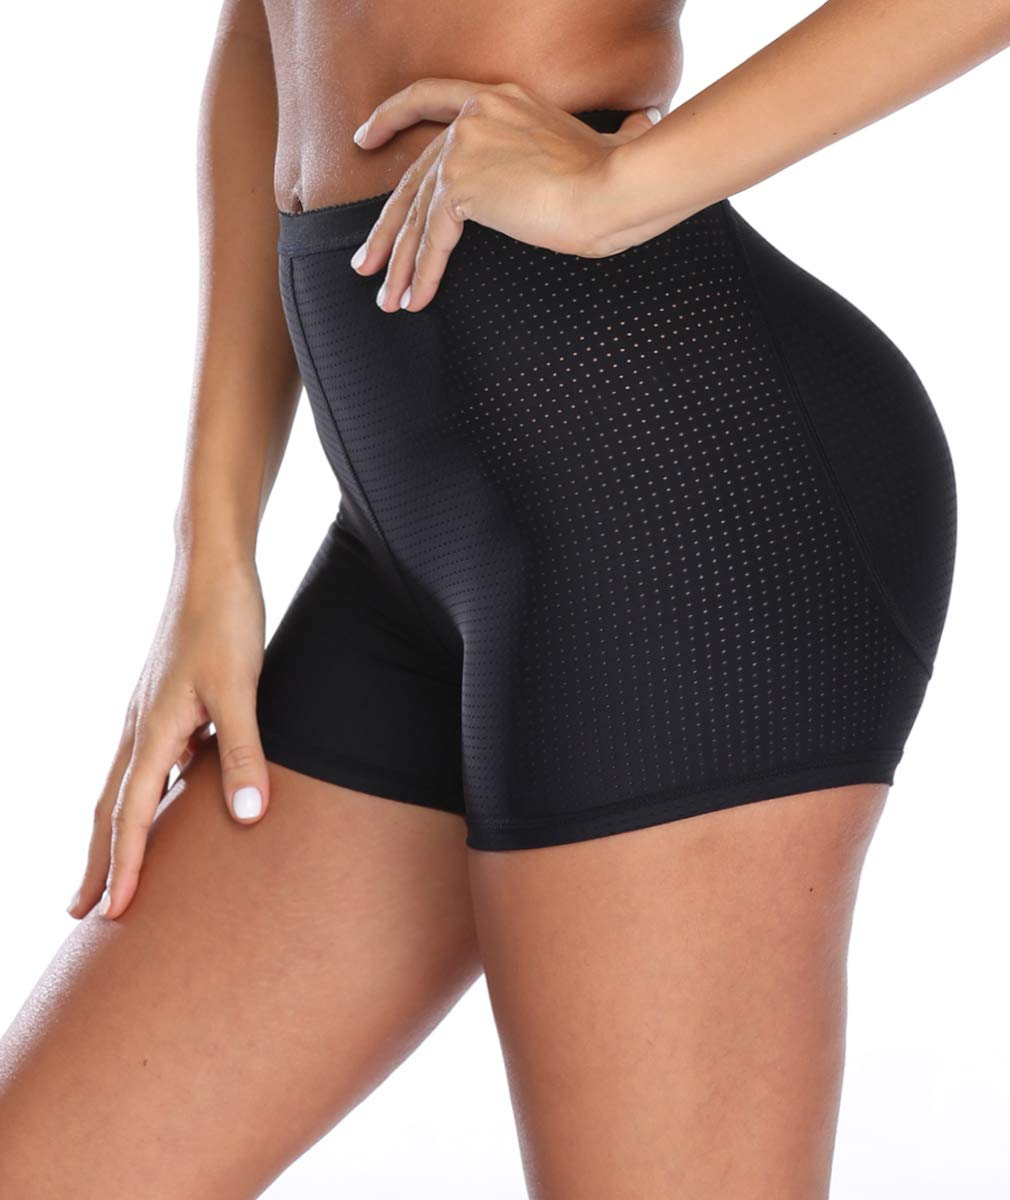 d21ace4918846 NINGMI Women Butt Lifter Padded Shapewear Enhancer Control Panties Body Shaper  Underwear product image